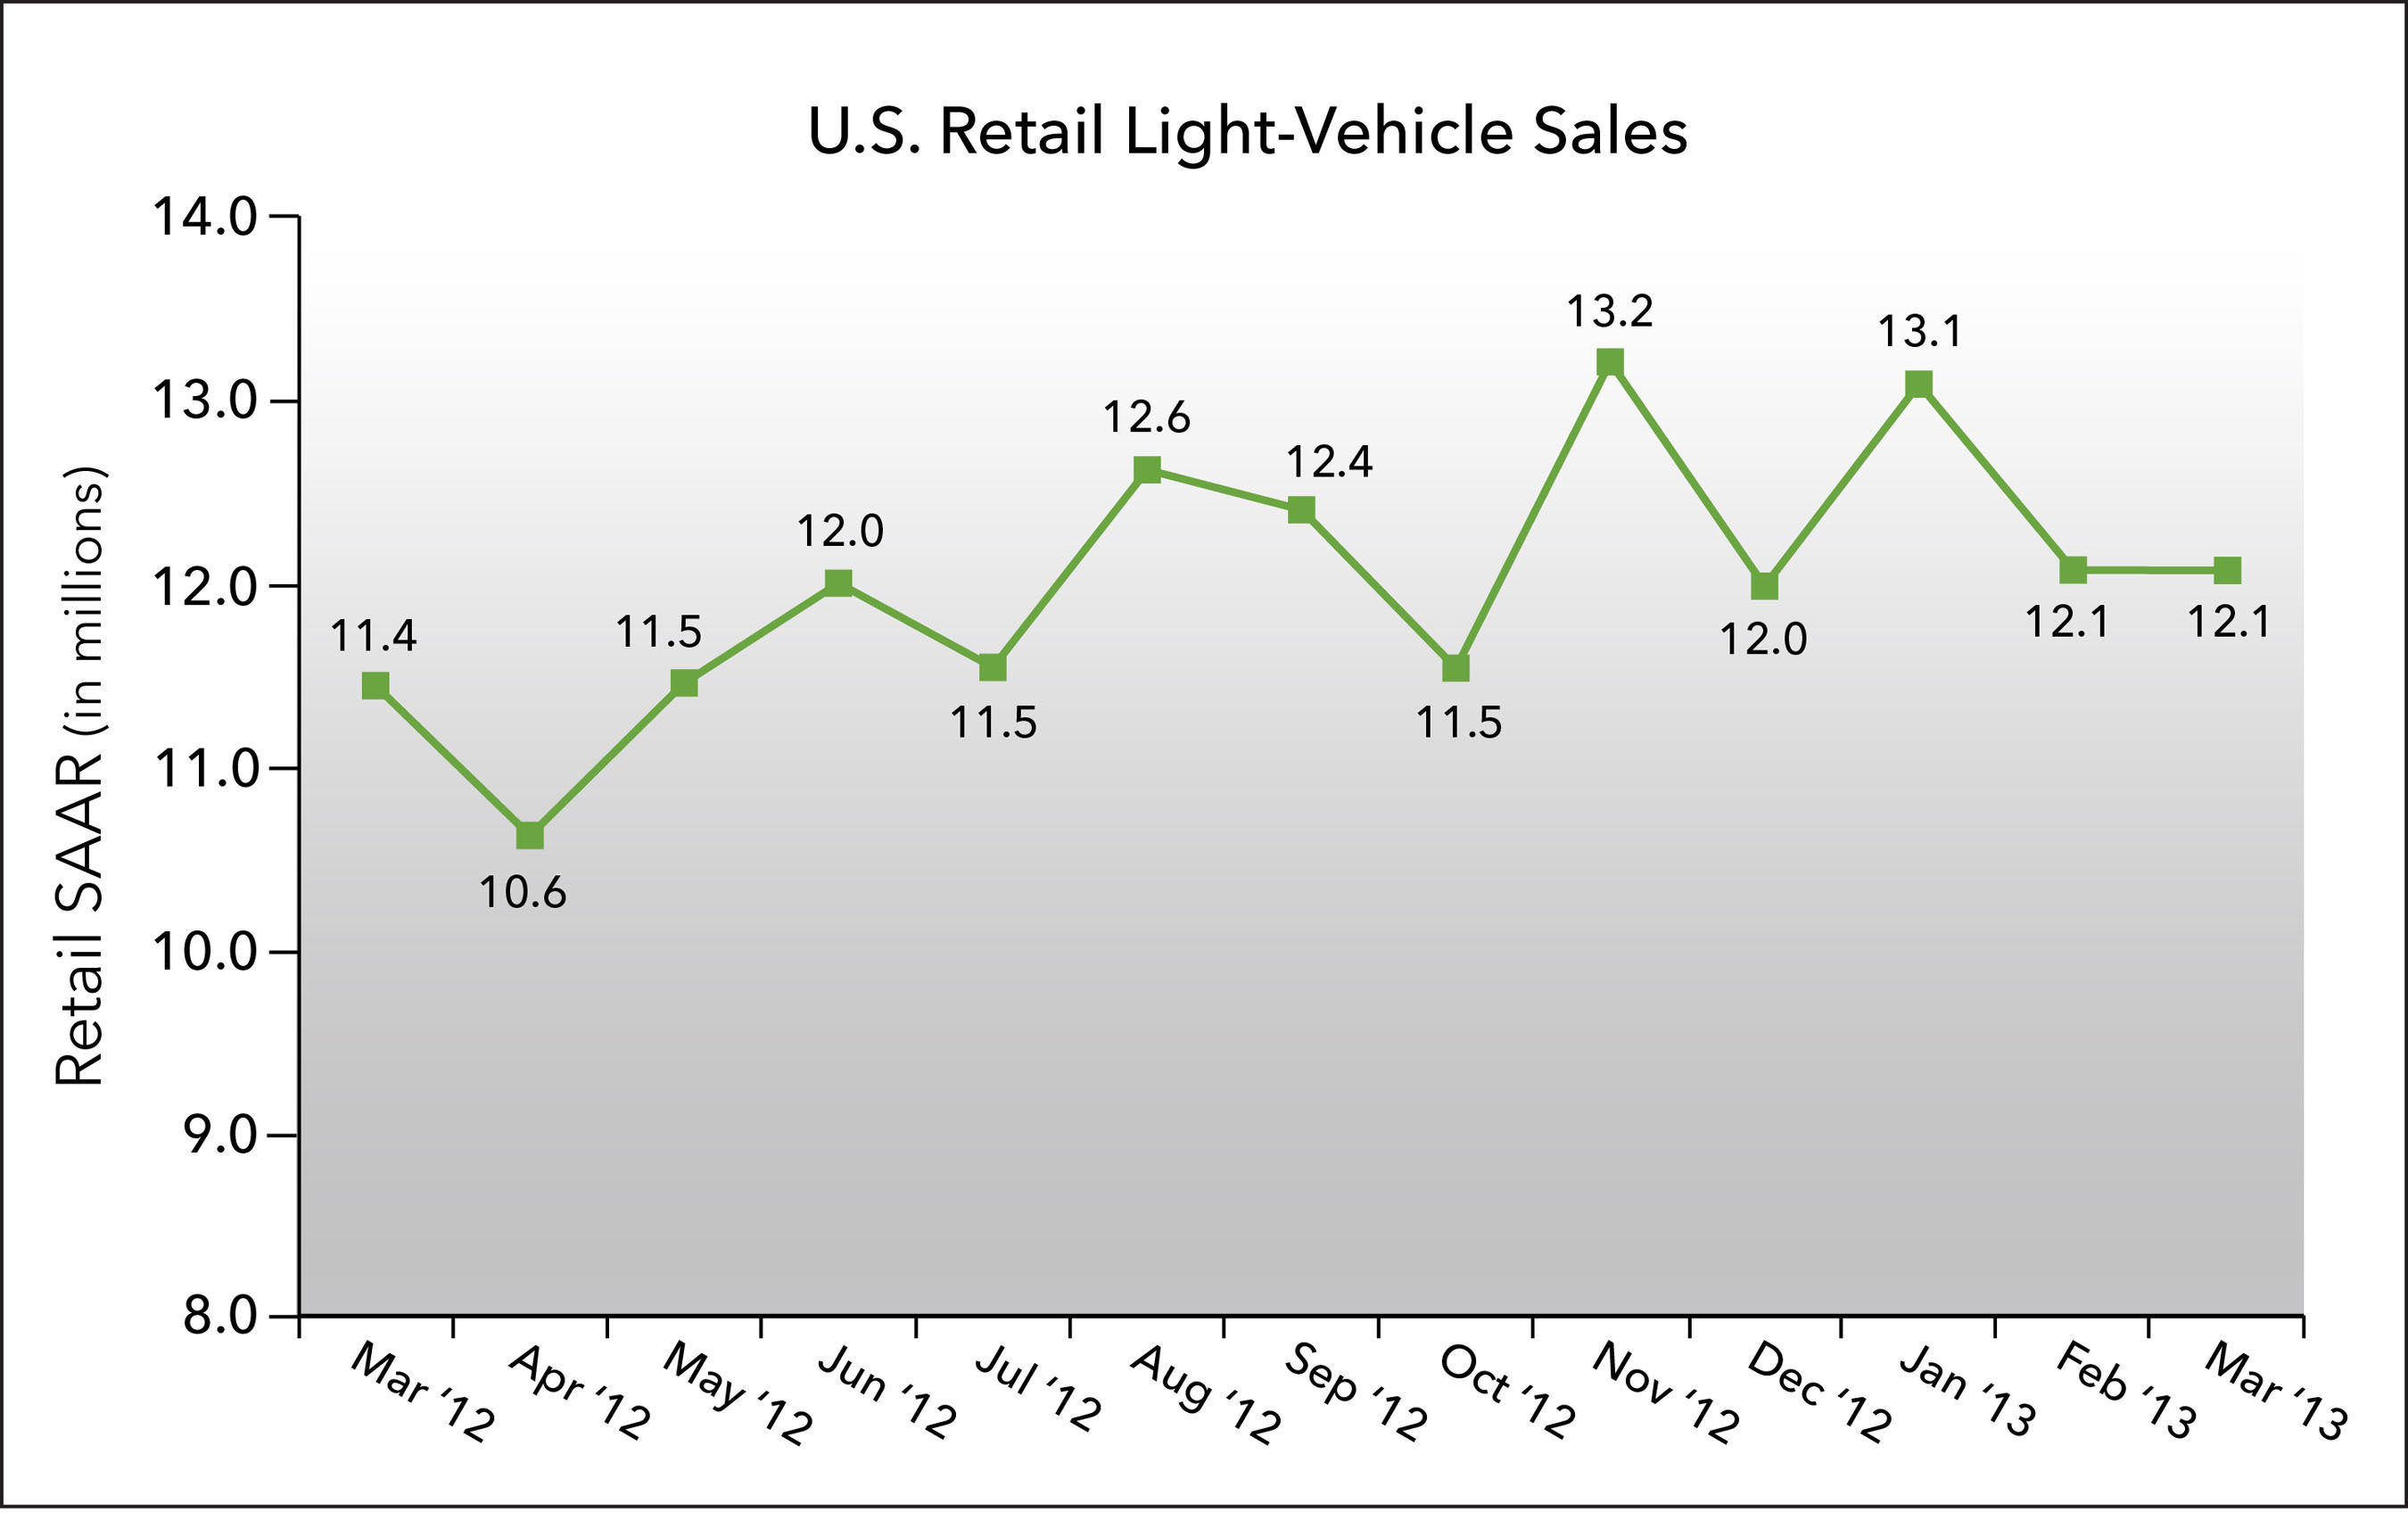 J.D. Power and LMC Automotive Report: New-Vehicle Selling Rate in March Keeps Pace with Strong